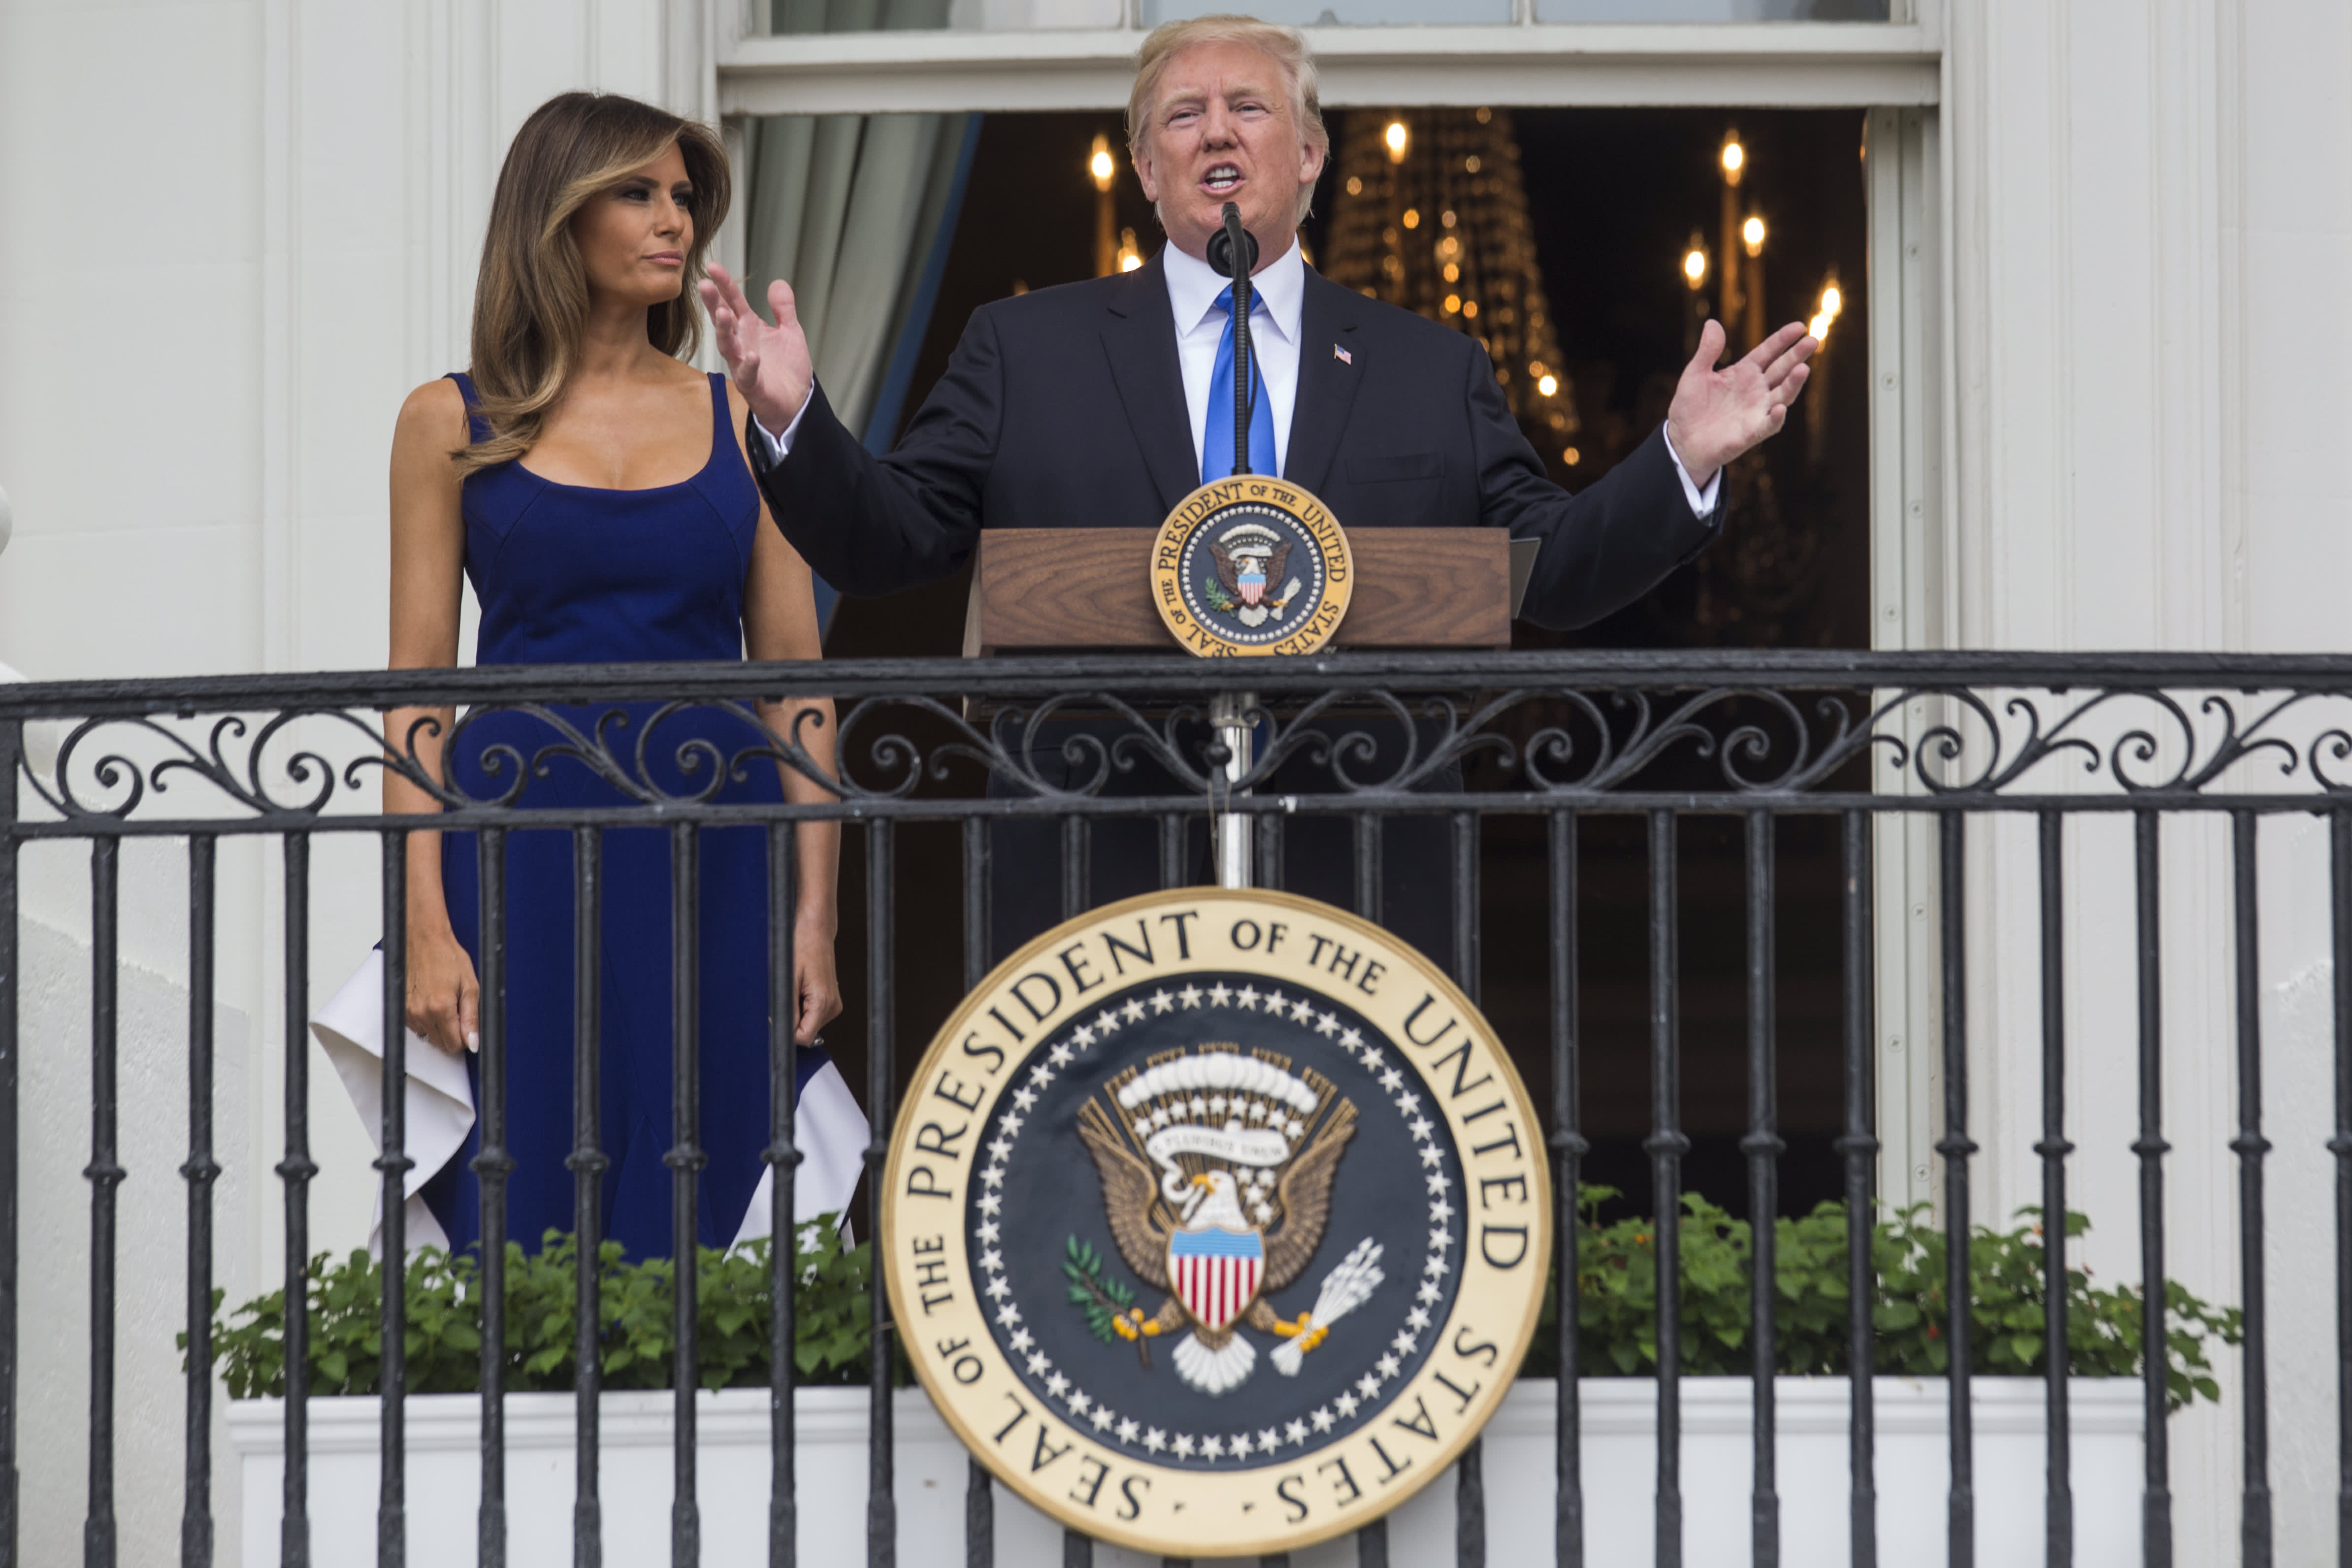 Trump Stokes National Divisions In Fourth Of July Speech